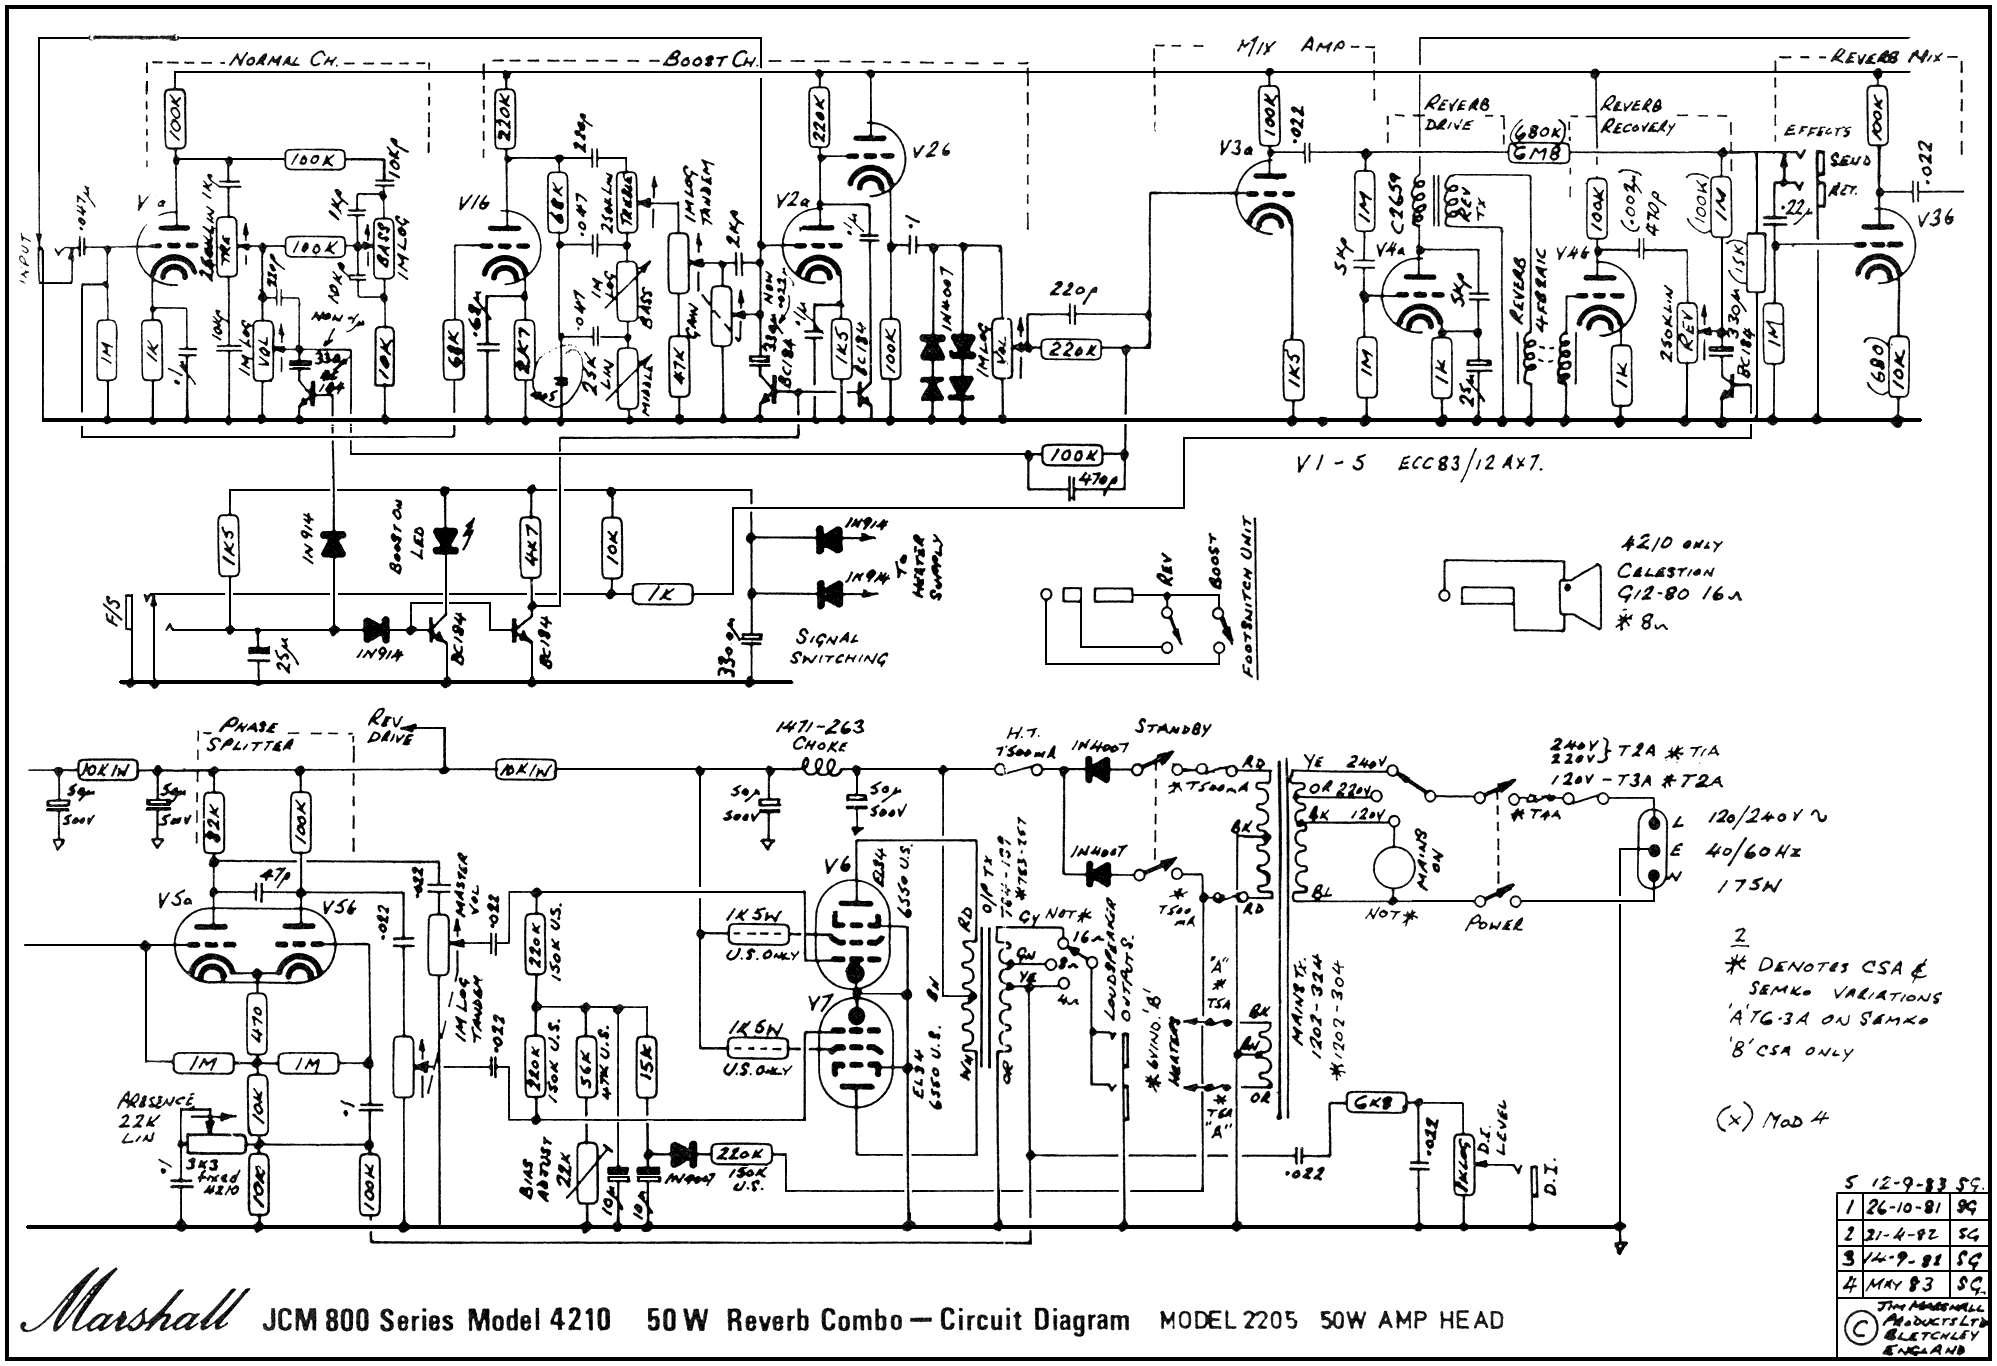 Guitar Amplifier Schematics - Guitar Nucleus on motor schematics, radio schematics, speaker schematics, generator schematics, wire schematics, ic circuit schematics, modem schematics, led schematics, orange amp schematics, robot schematics, guitar schematics, valve schematics, ulf receiver schematics, audio circuit schematics, electronic circuit schematics, astable multivibrator schematics, computer schematics, heathkit schematics, transformer schematics, tube schematics,